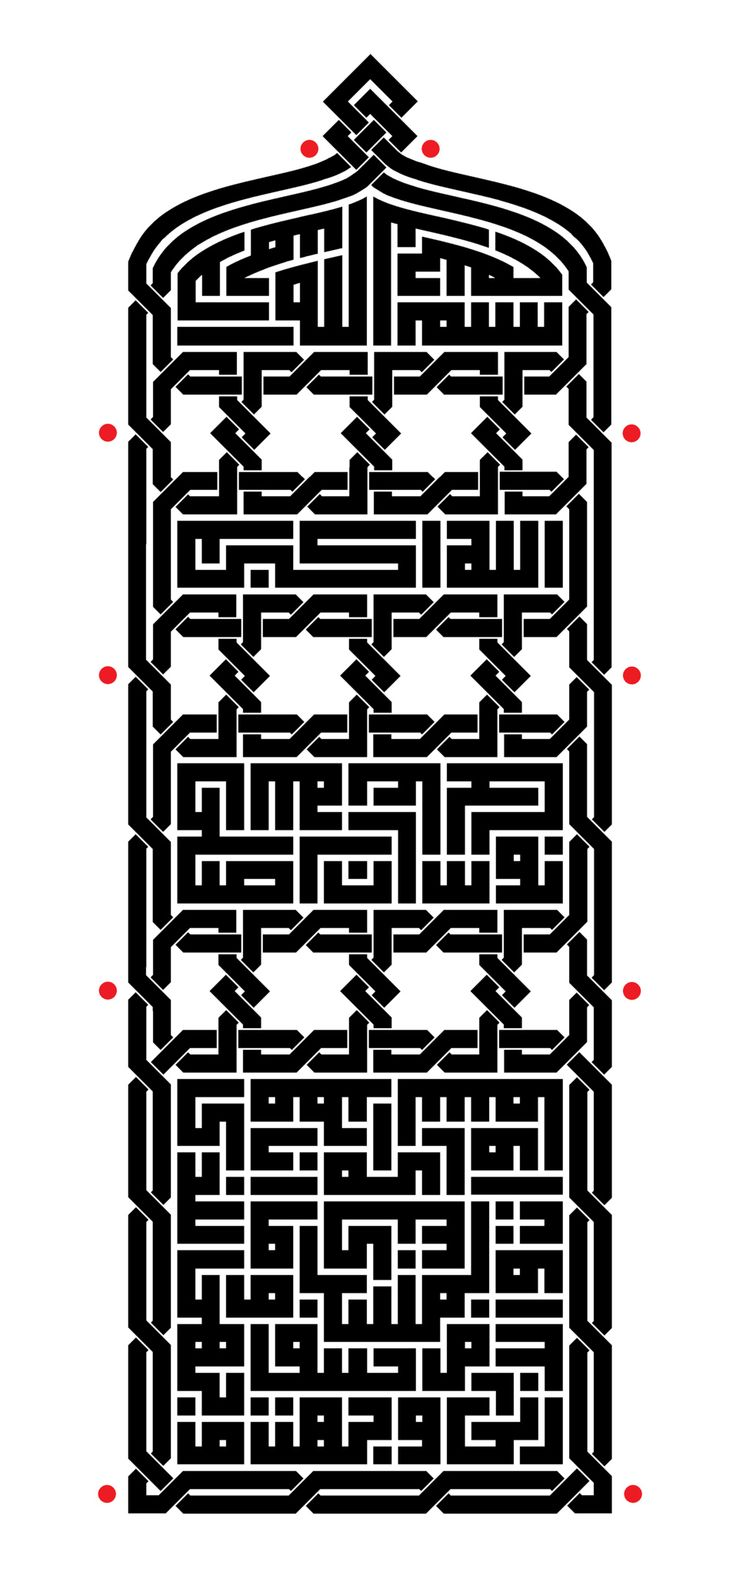 "https://flic.kr/p/f36Lyz | Salah | Arabic Square Kufic Calligraphy: 4 parts, from bottom-up: ""For me I have set my face firmly and truly toward Him Who created the heavens and the earth, and never shall I give partners to God"" [6:79], ""I intend to perform salah, for the sake of God, the most High"" [intention], ""God is the Greatest"" [takbir], and lastly, as the dome is the basmala."